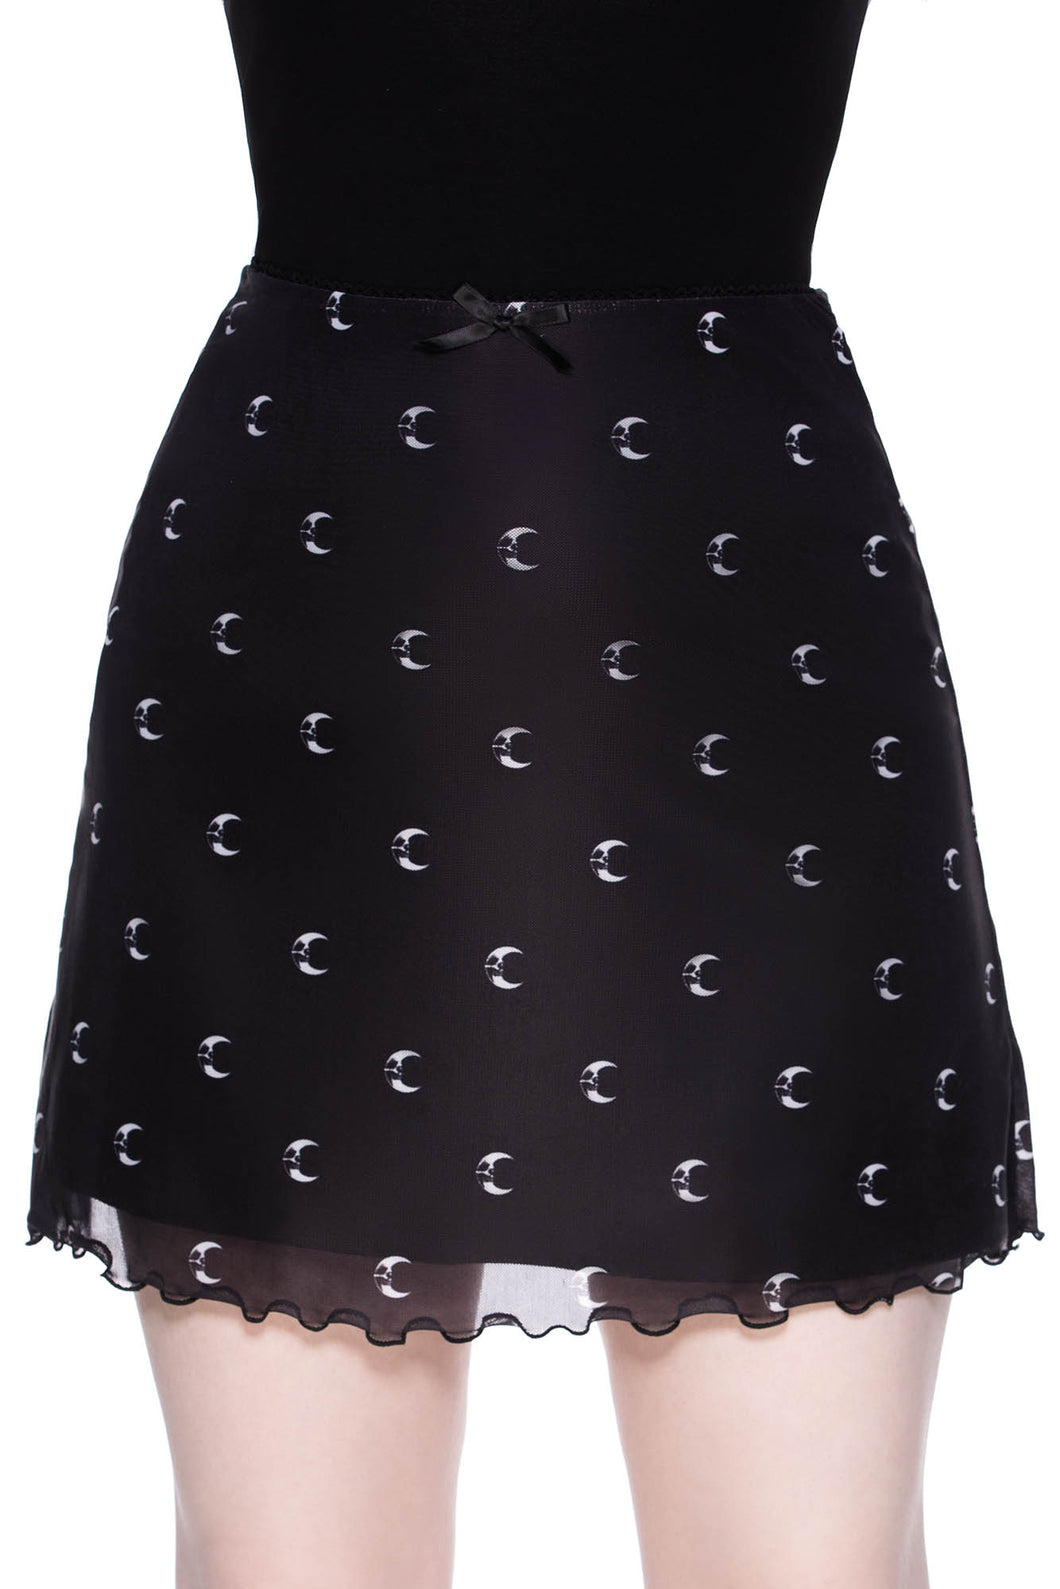 Killstar Monica Skater Skirt - Kate's Clothing